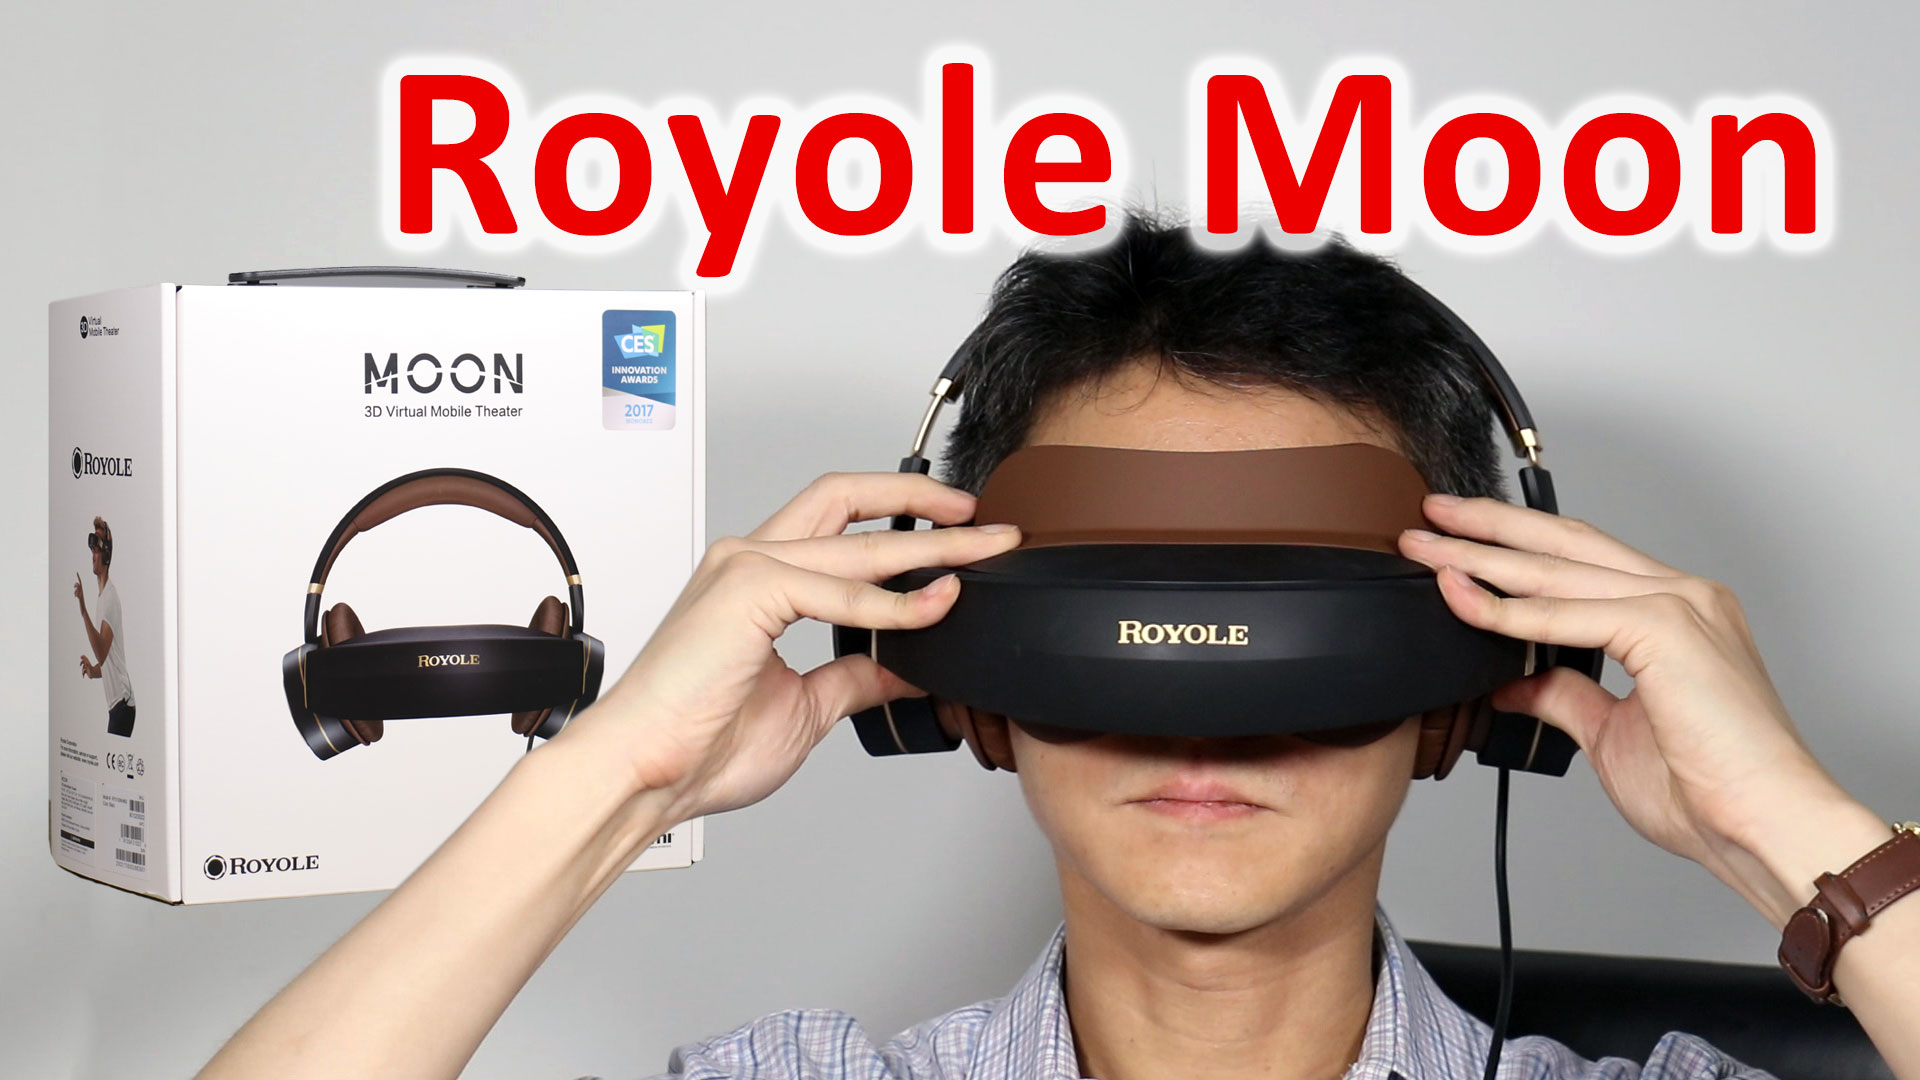 Royole Moon Review Royole Moon 3d Virtual Mobile Theater Otakus Geeks